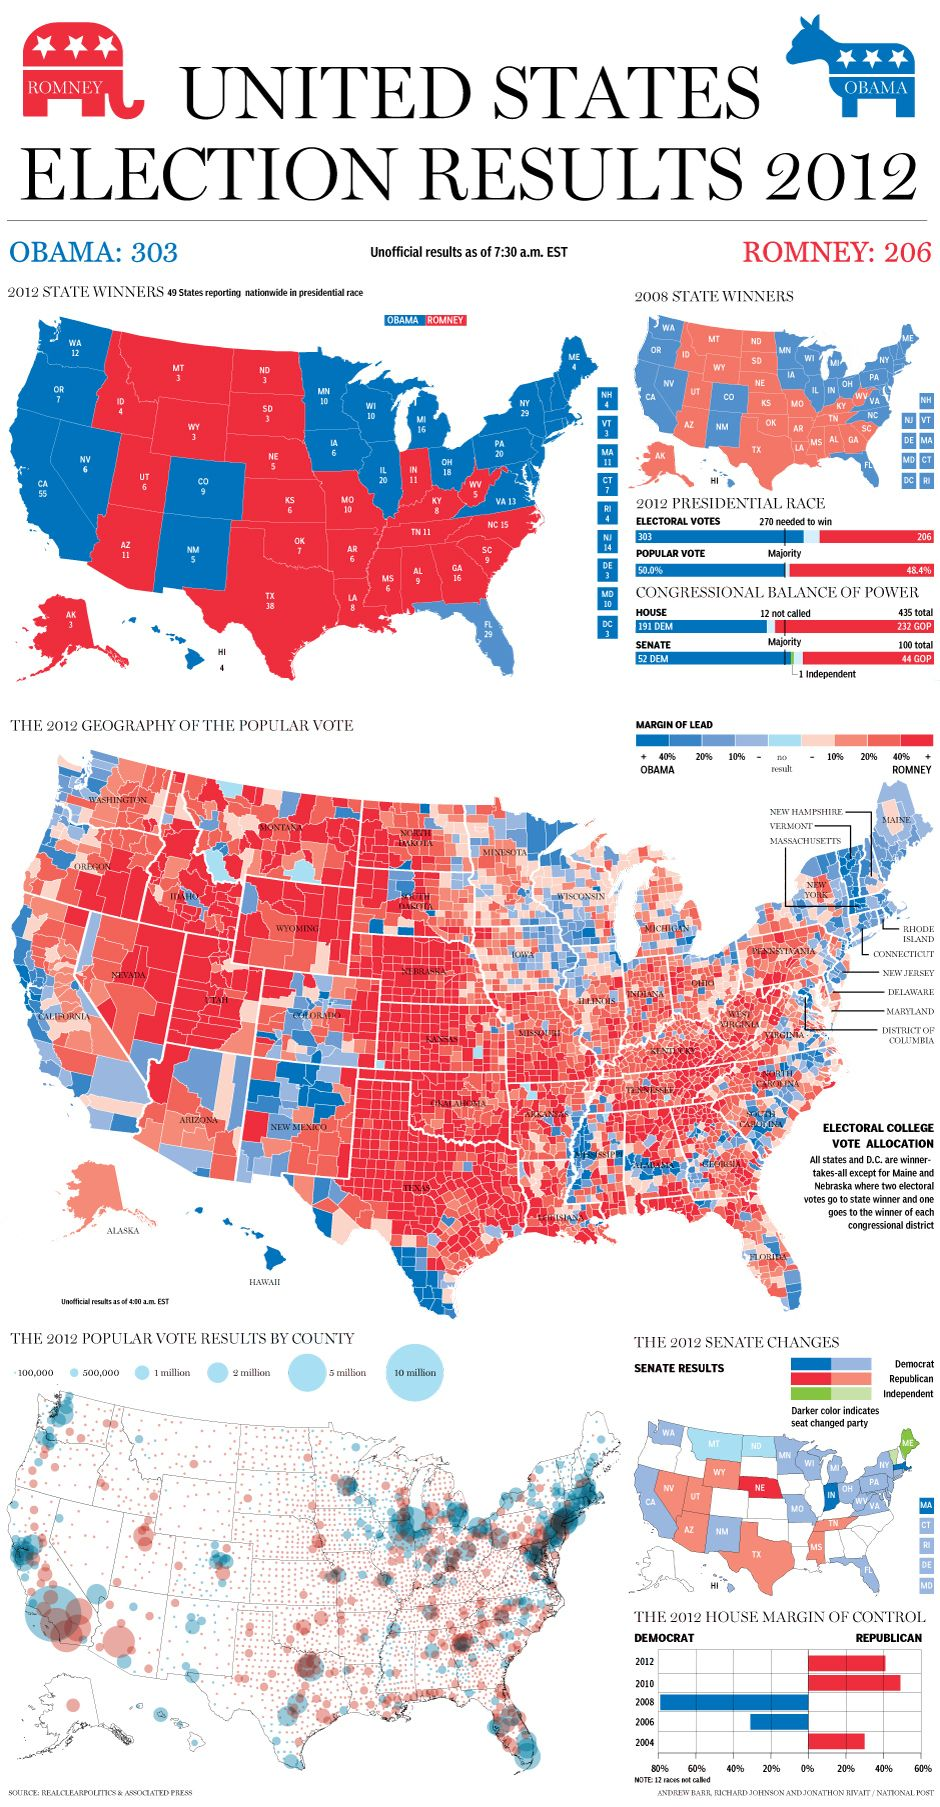 Pin by David Lind on Maps: Politics\'n Social Engineering | Pinterest ...